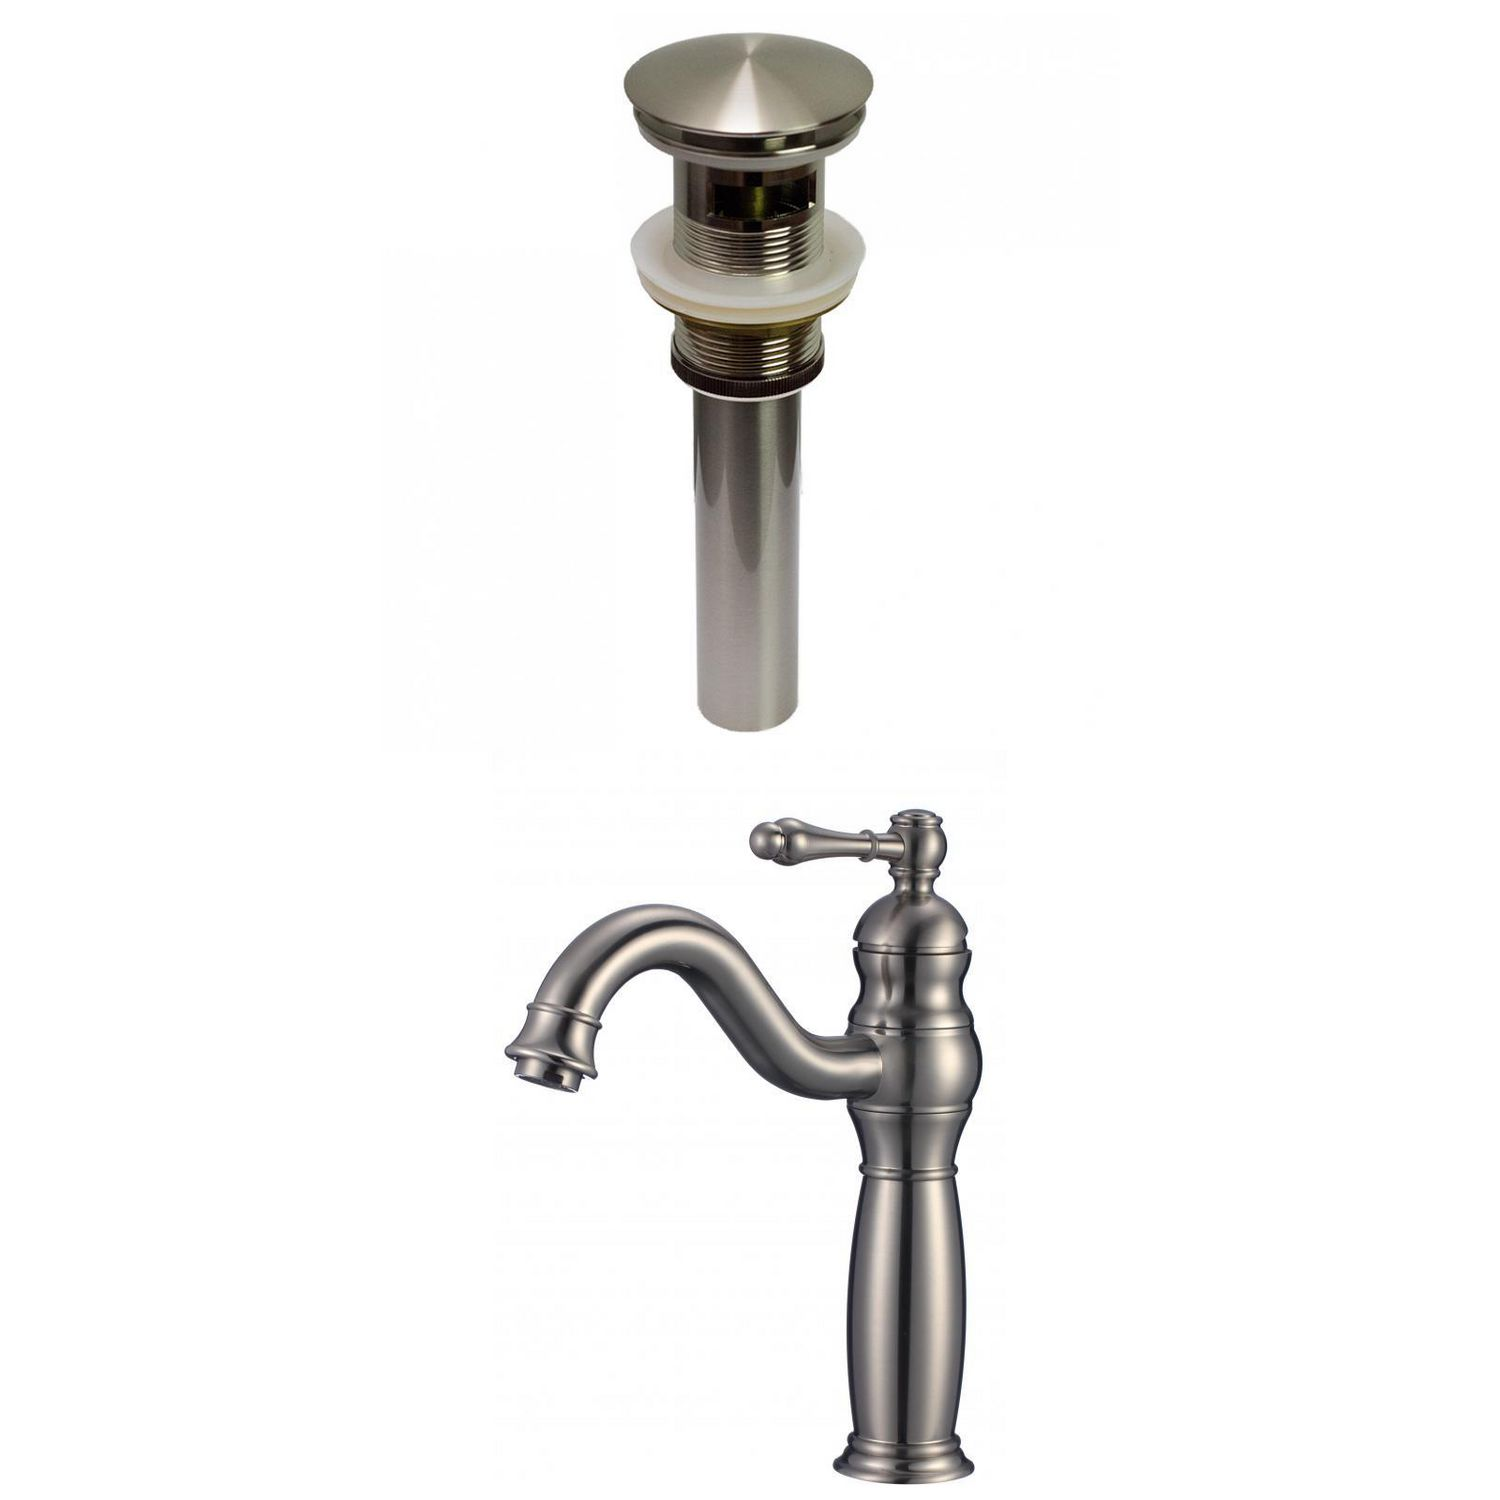 American Imaginations Ai 29479 1 Hole Cupc Approved Lead Free Brass Faucet Set In Brushed Nickel Color Overflow Drain Incl Walmart Canada